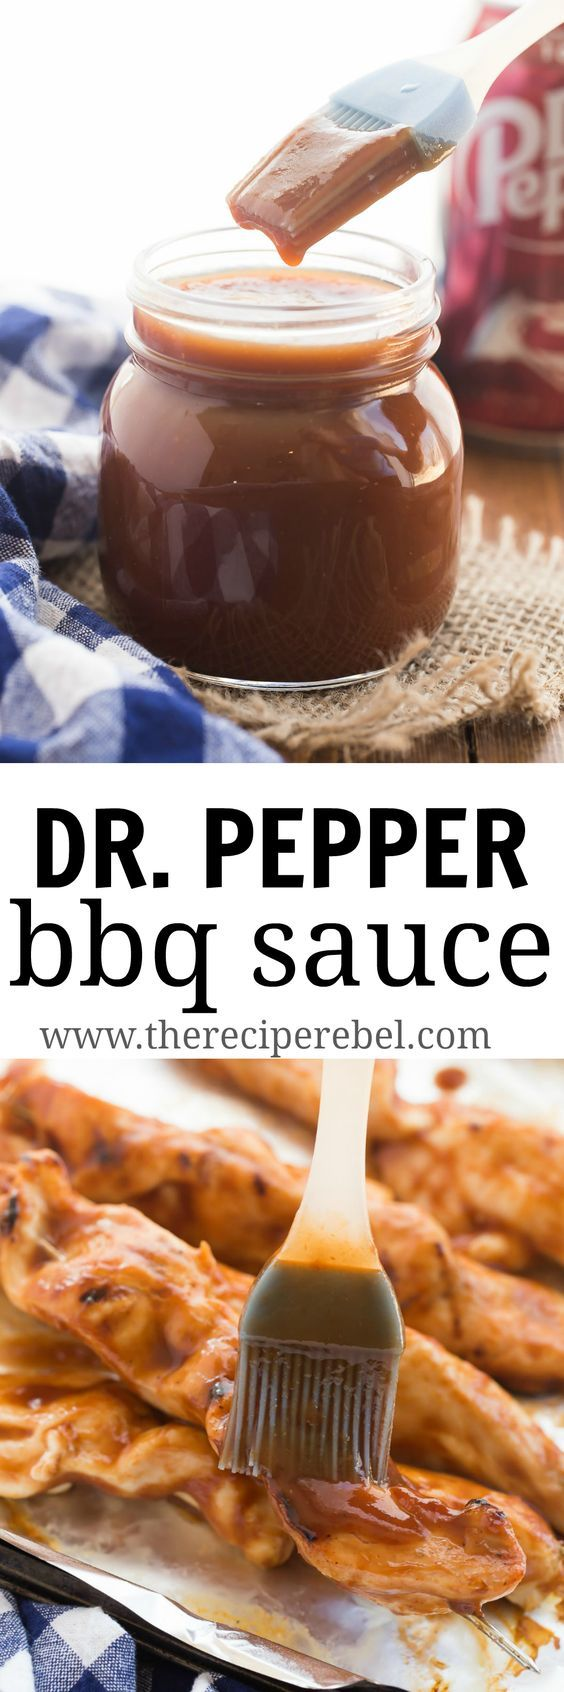 Bbq sauces, Sauces and Barbecue sauce on Pinterest